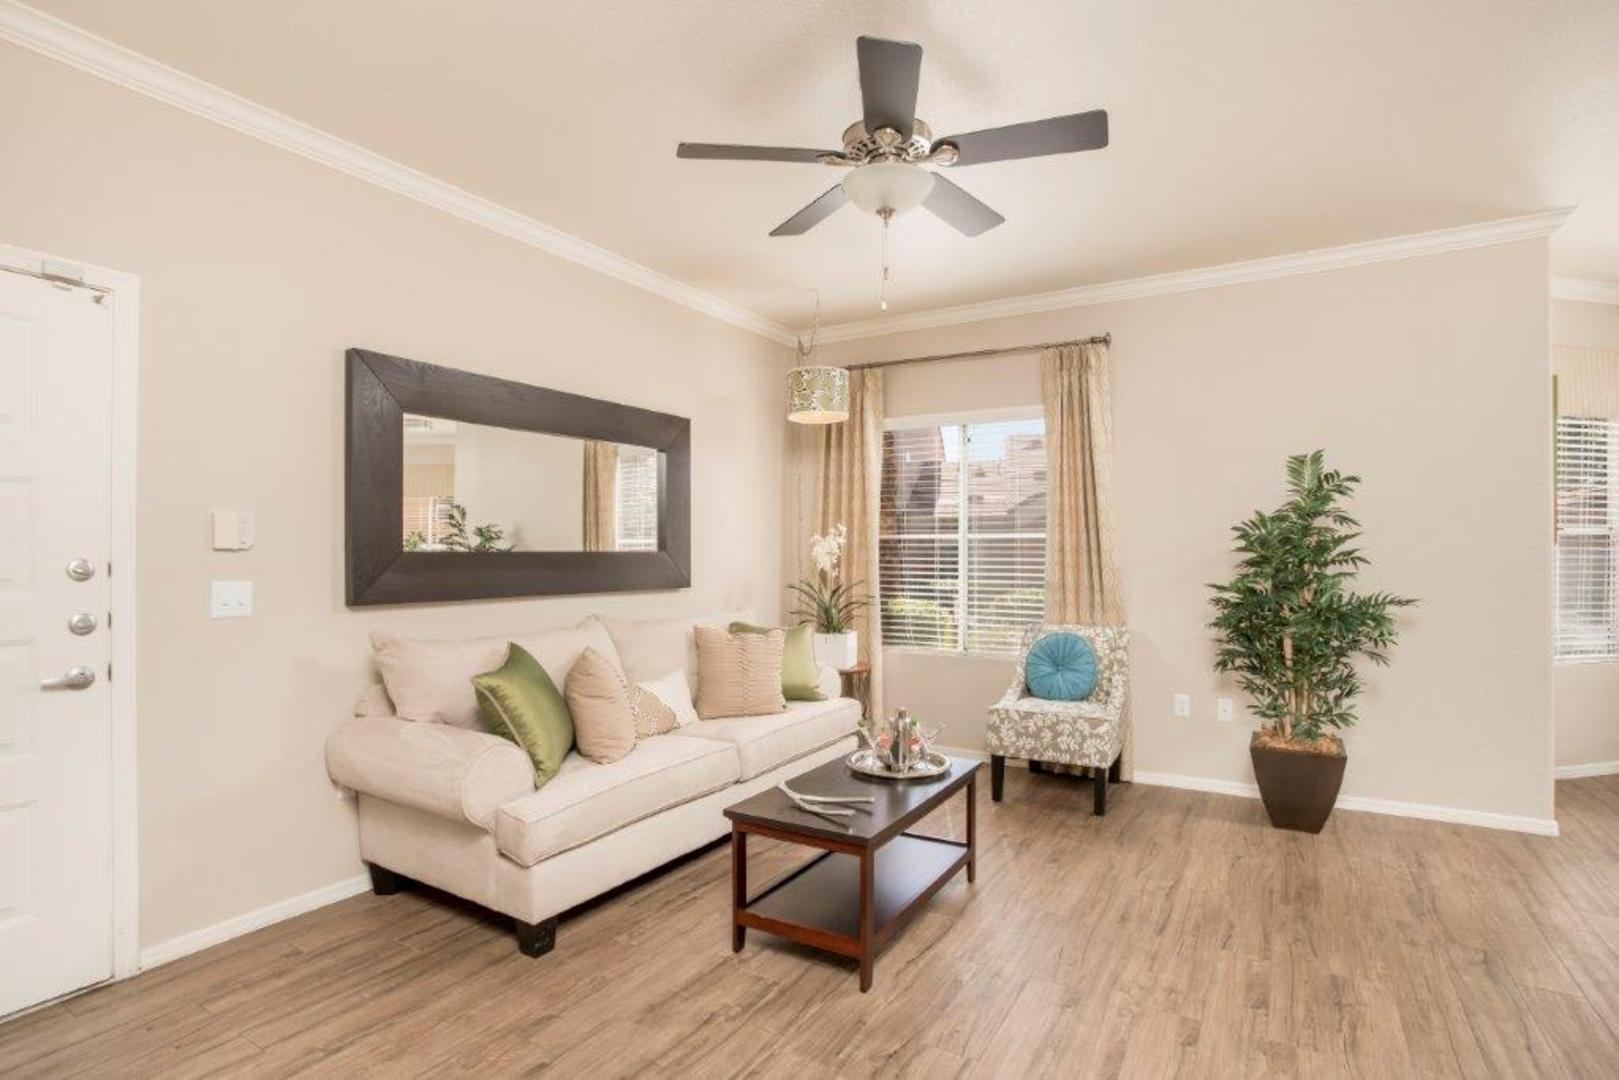 Upscale Ceiling Fan Pinnacle At Union Hills Luxury Apartments Phoenix